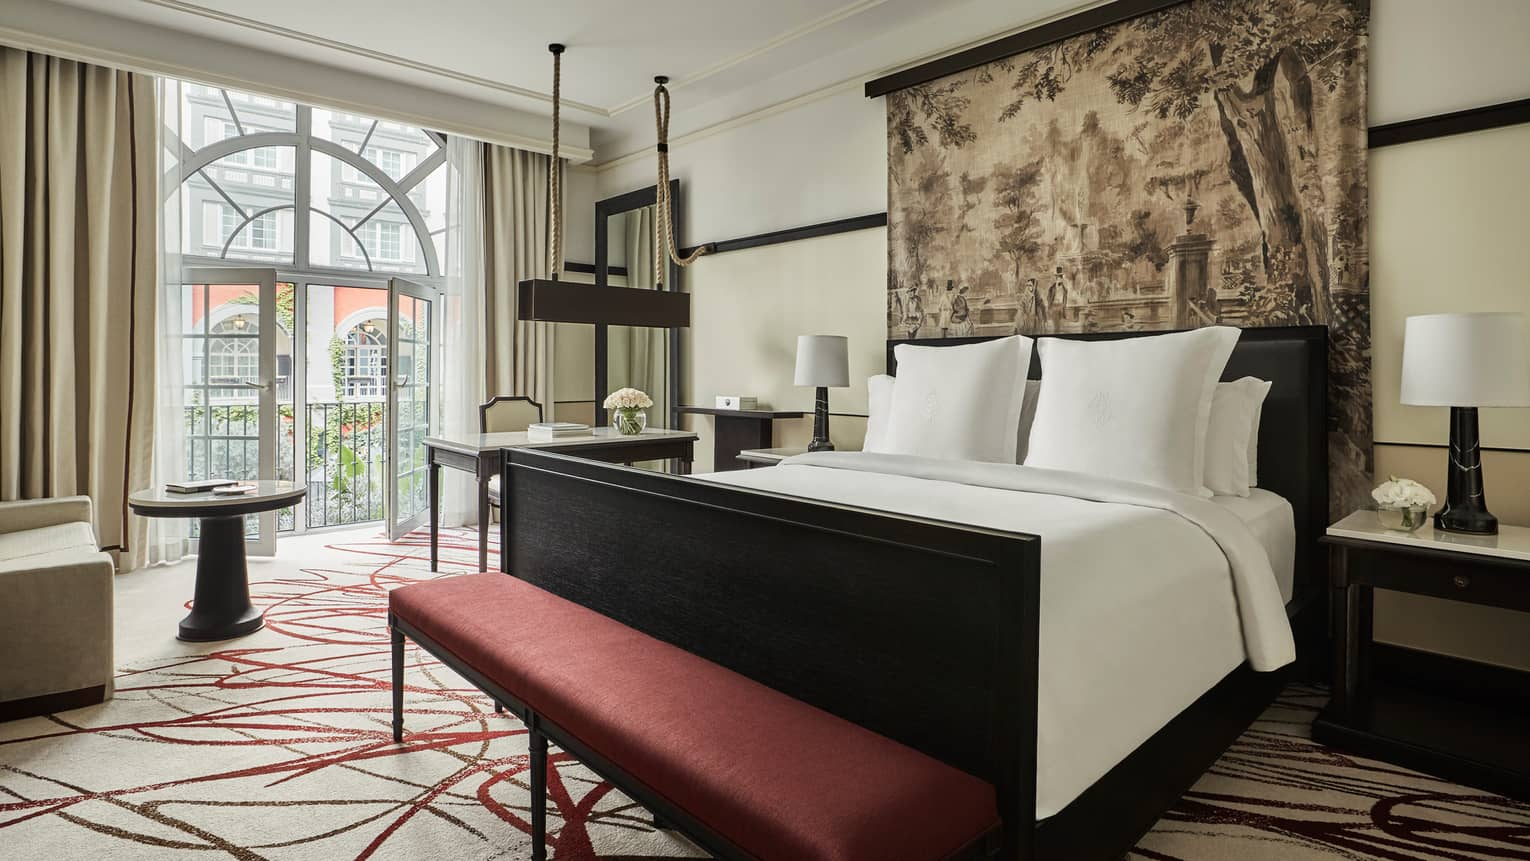 Premier Room bed under print headboard, red bench at foot, sunny arched balcony glass doors